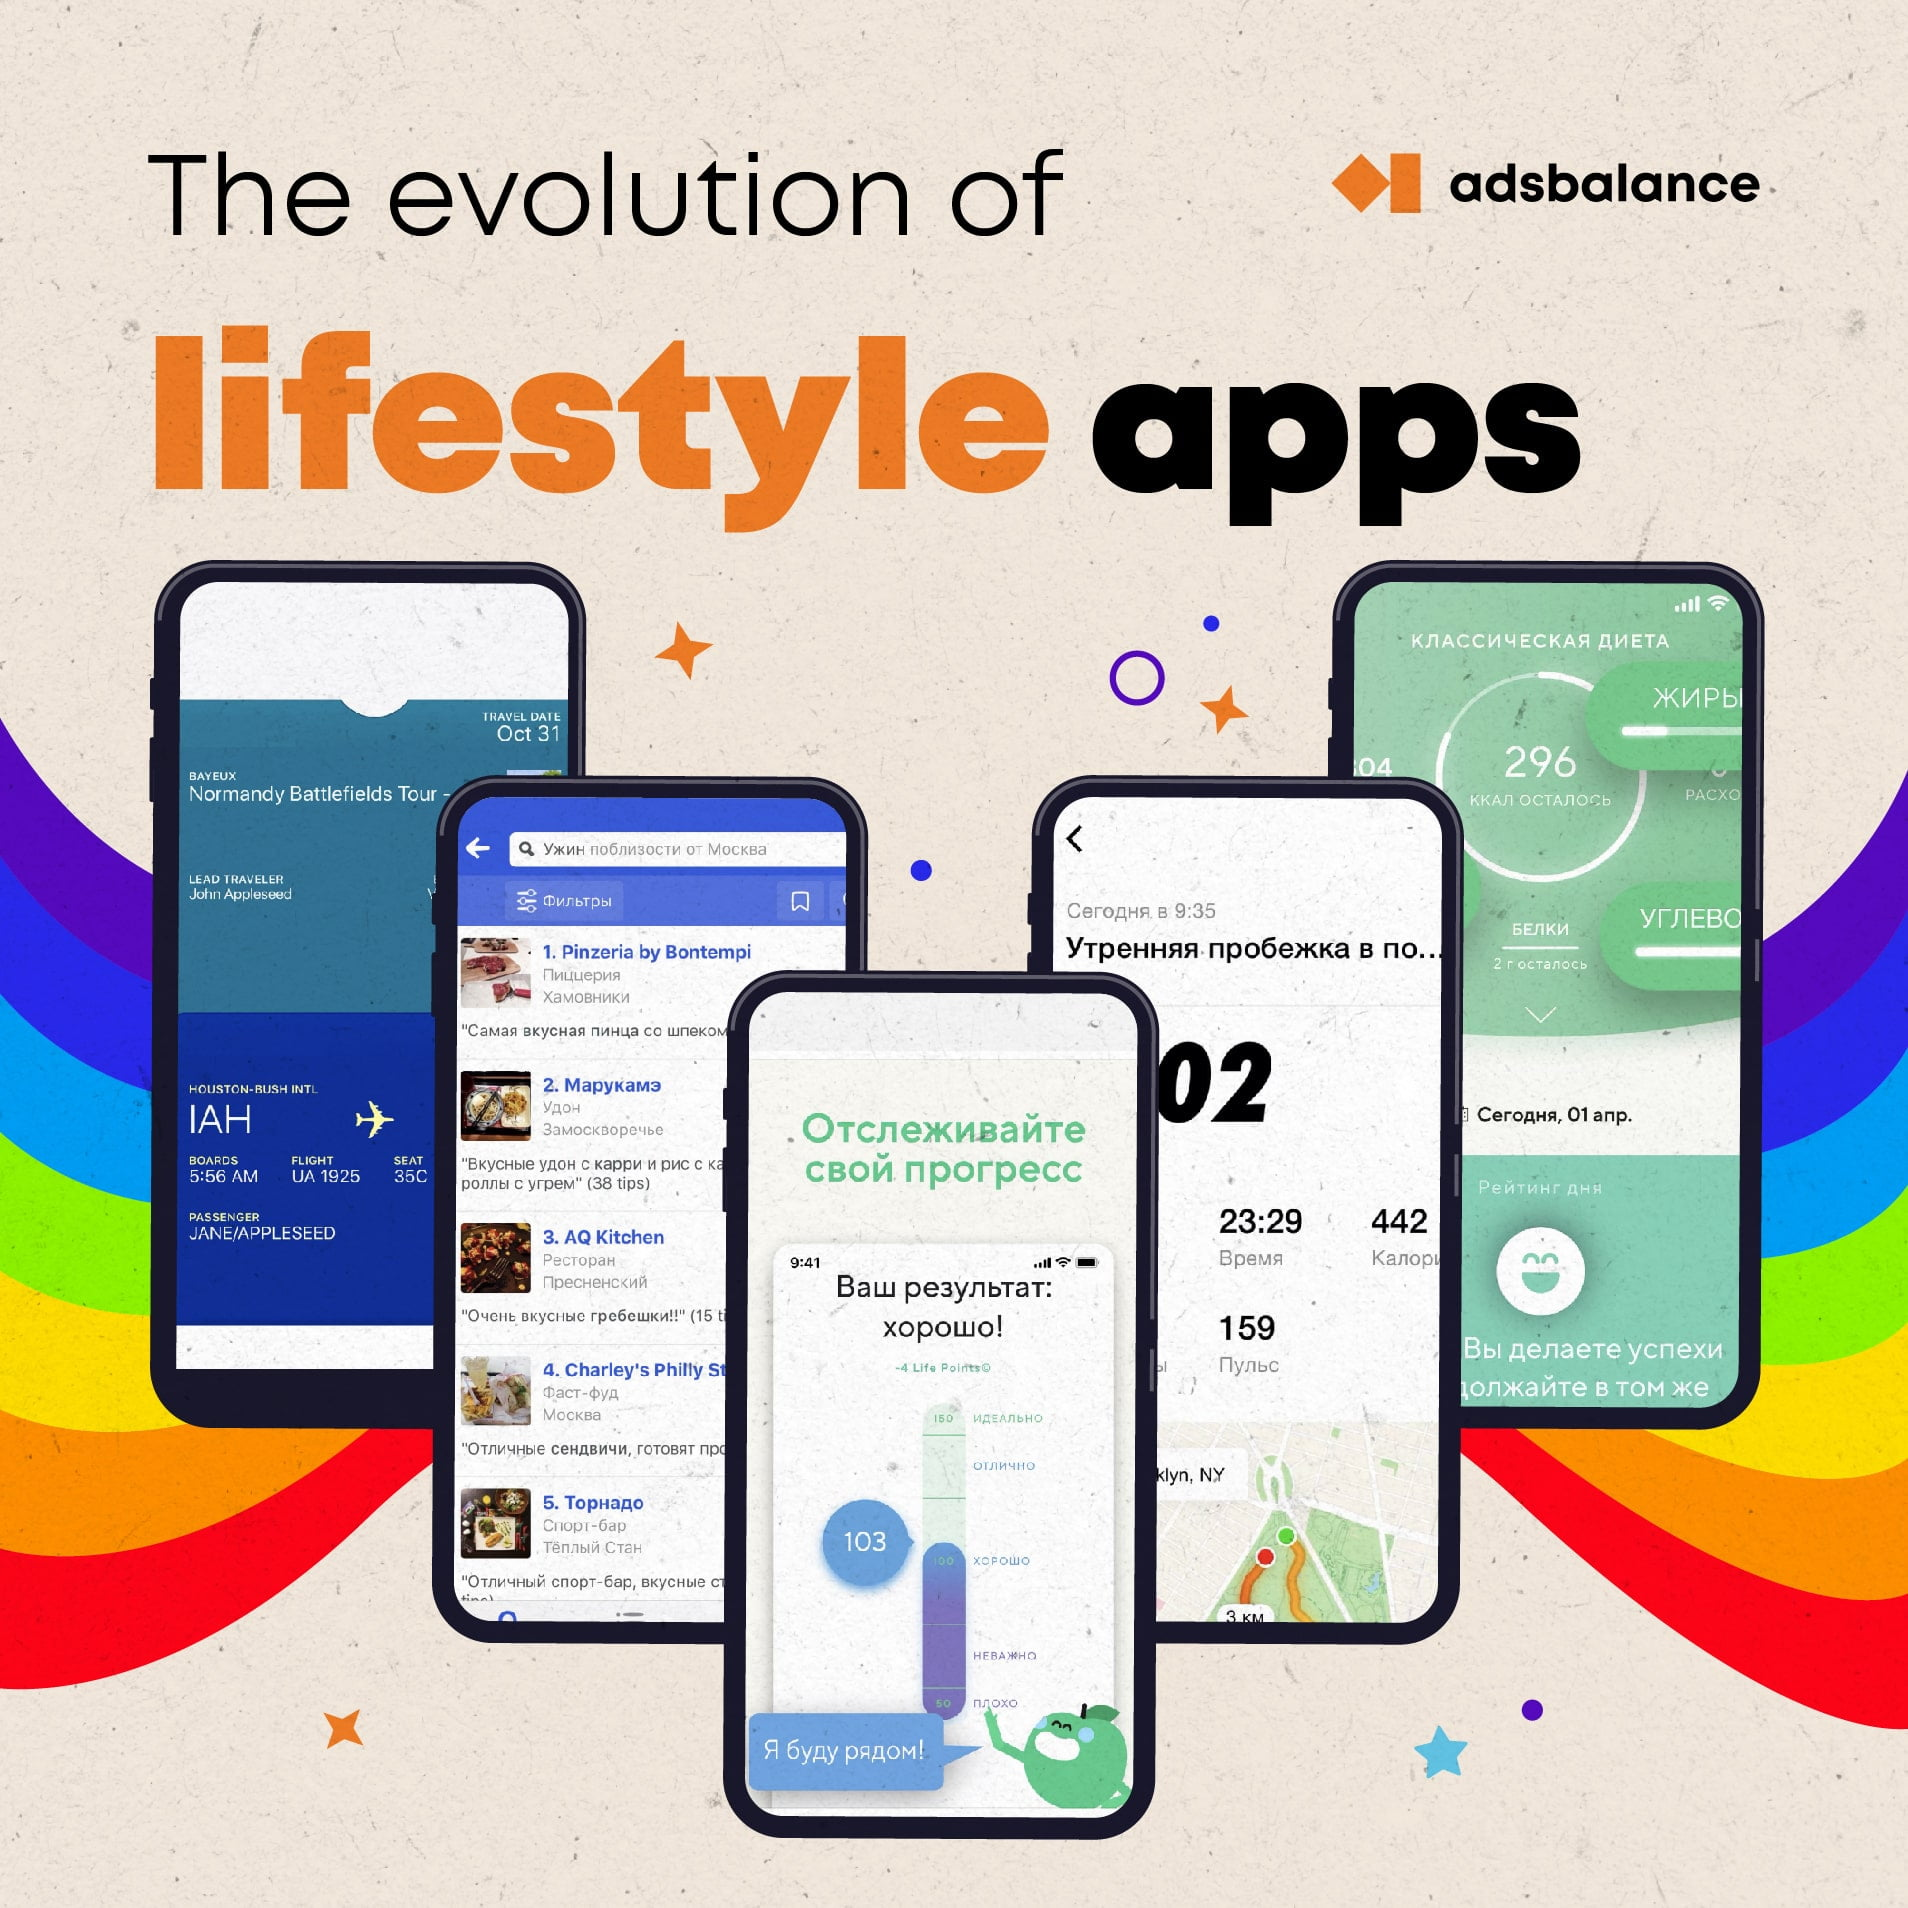 The evolution of Lifestyle apps